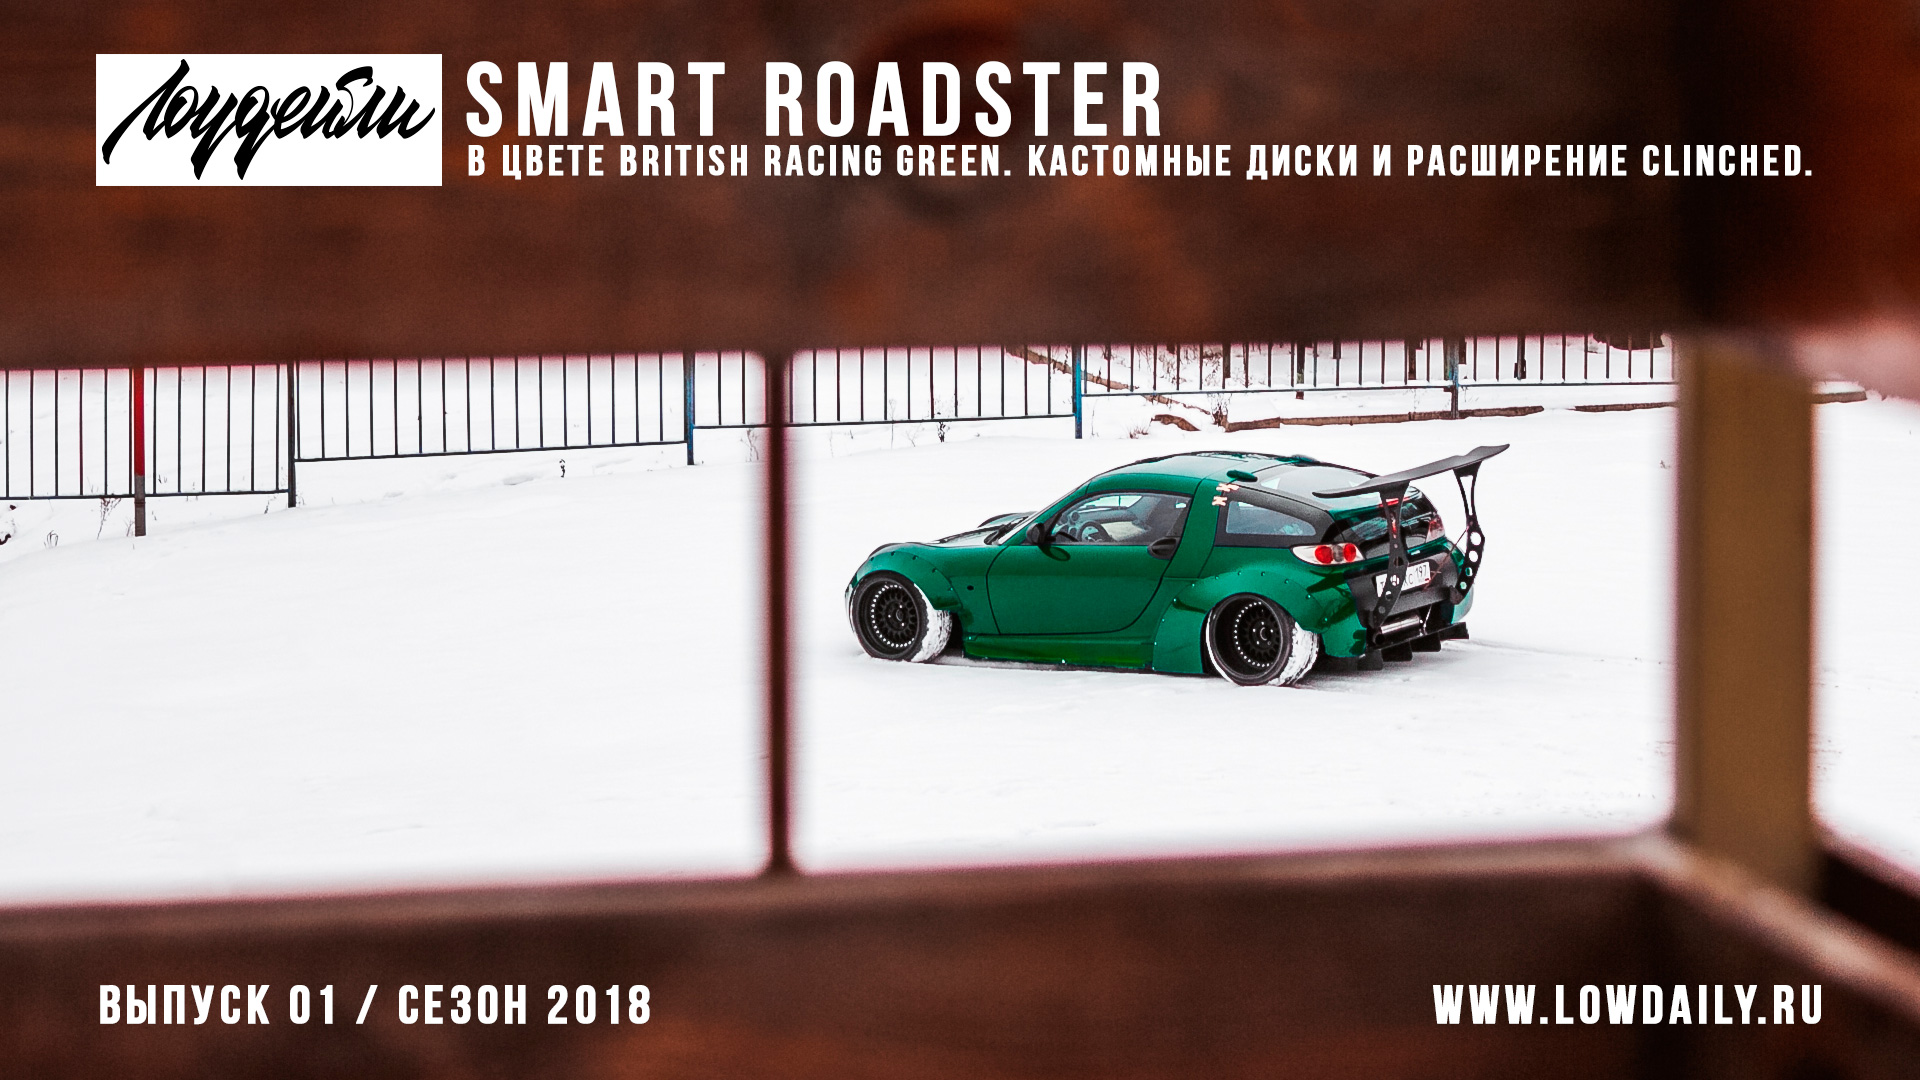 Lowdaily Video 01/2018 - Smart Roadster в цвете British Racing Green.